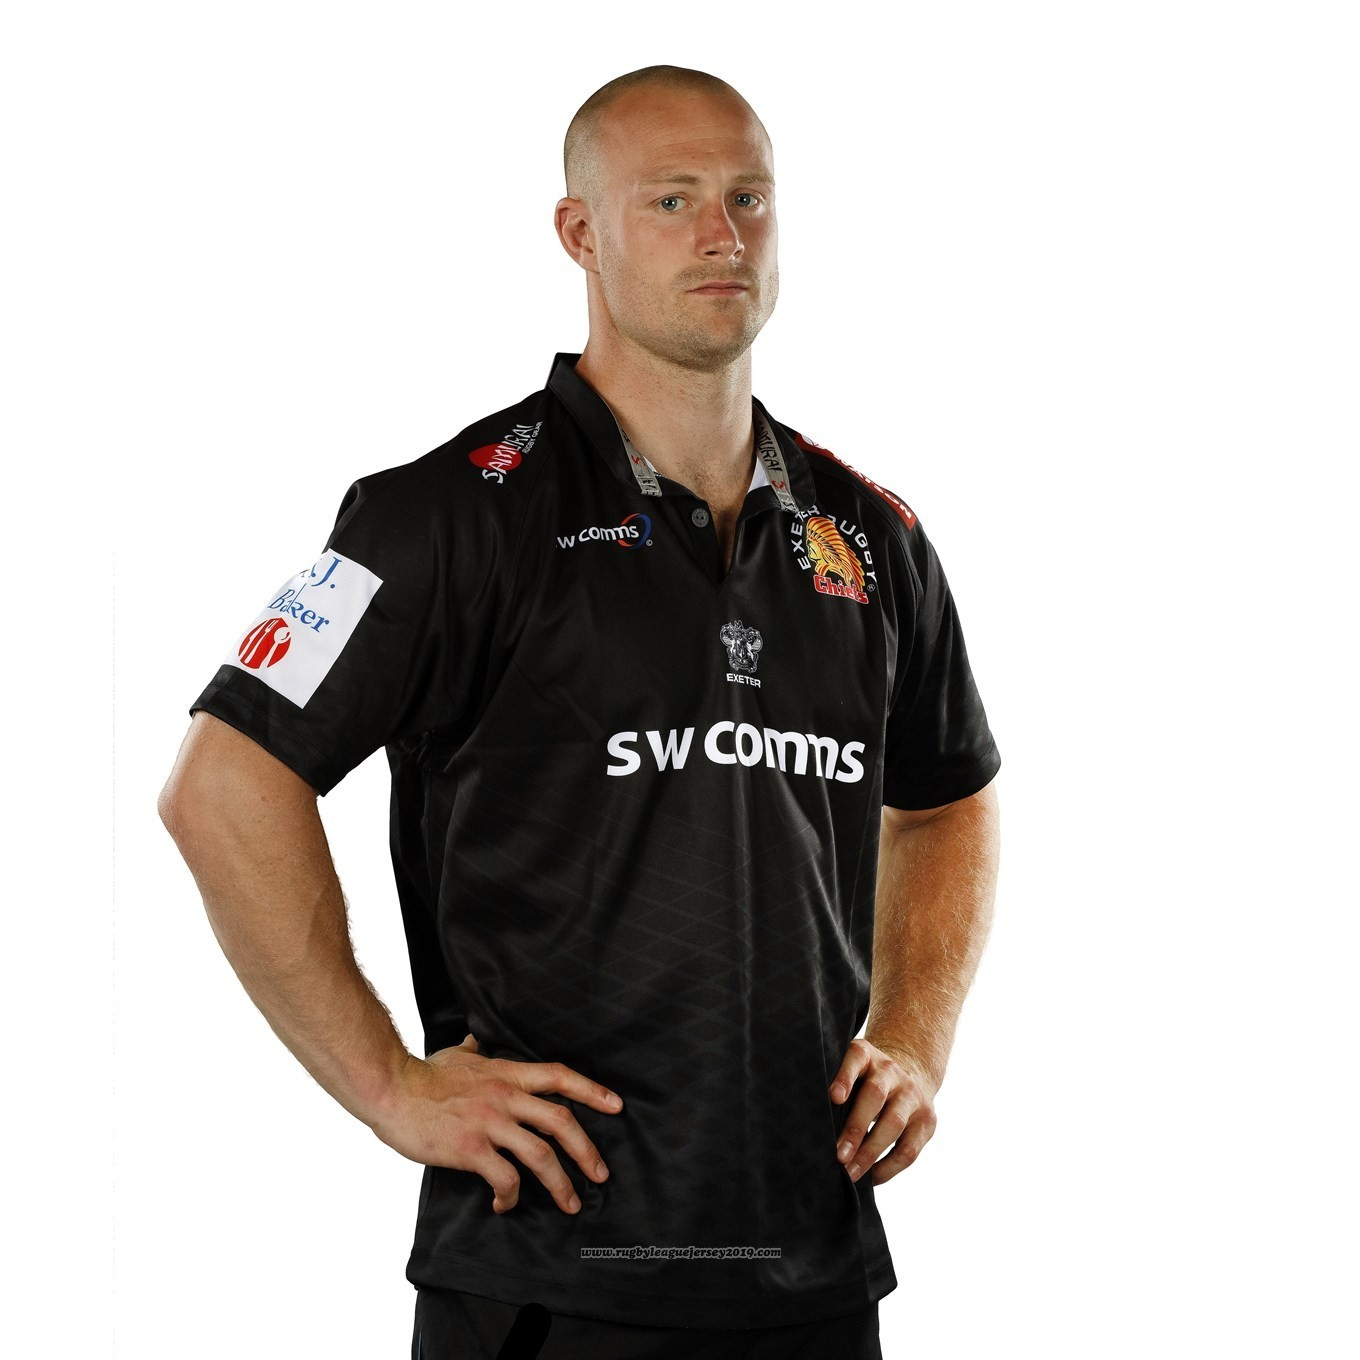 230f8c5ee34 Jersey Exeter Chiefs Rugby 2017-18 Home - wholesale Exeter Chiefs ...